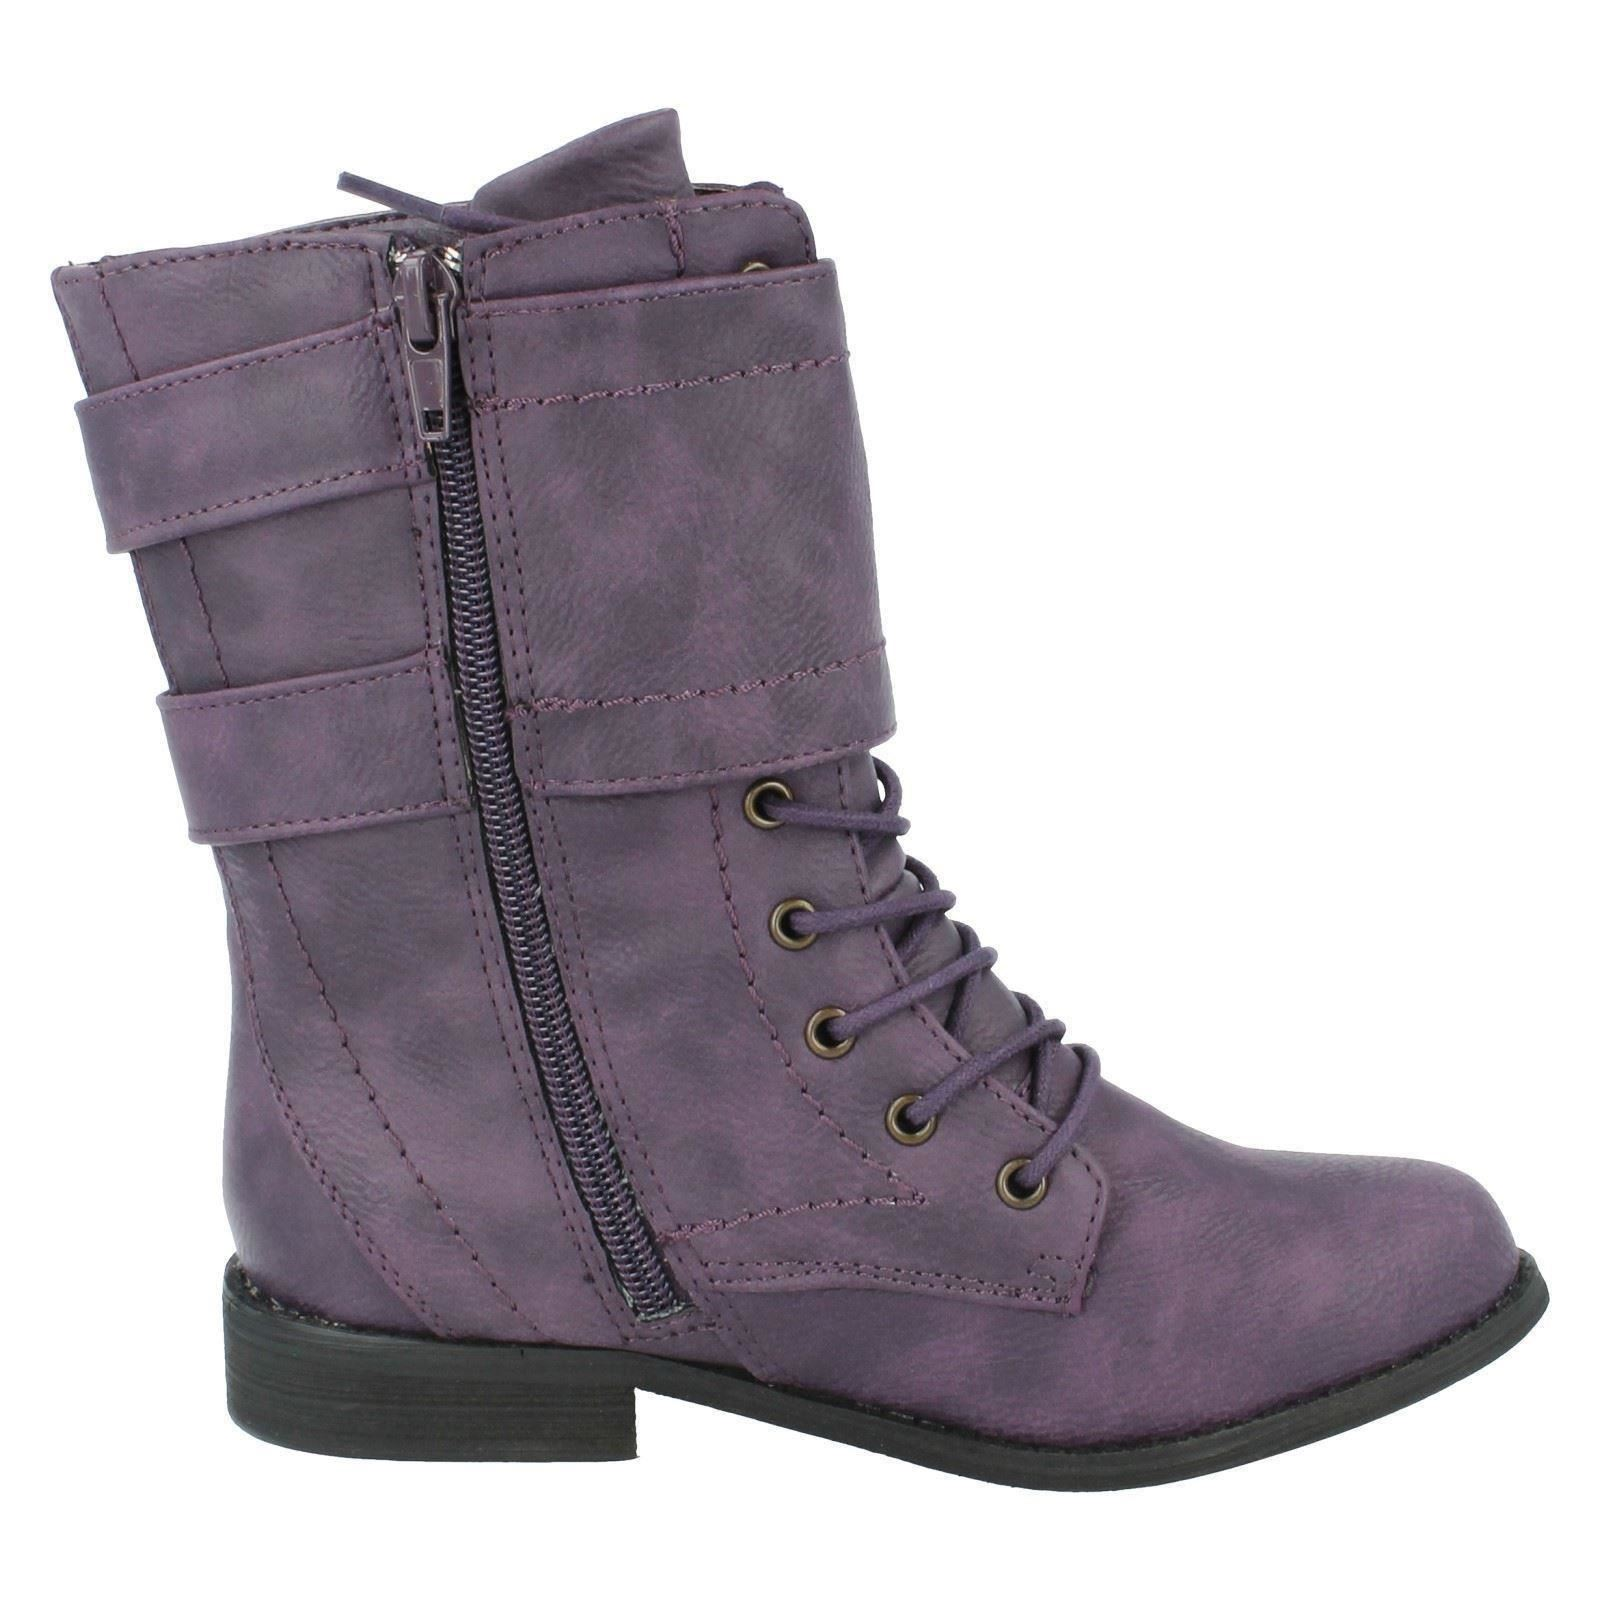 Girls Spot On Boots Style - H5025